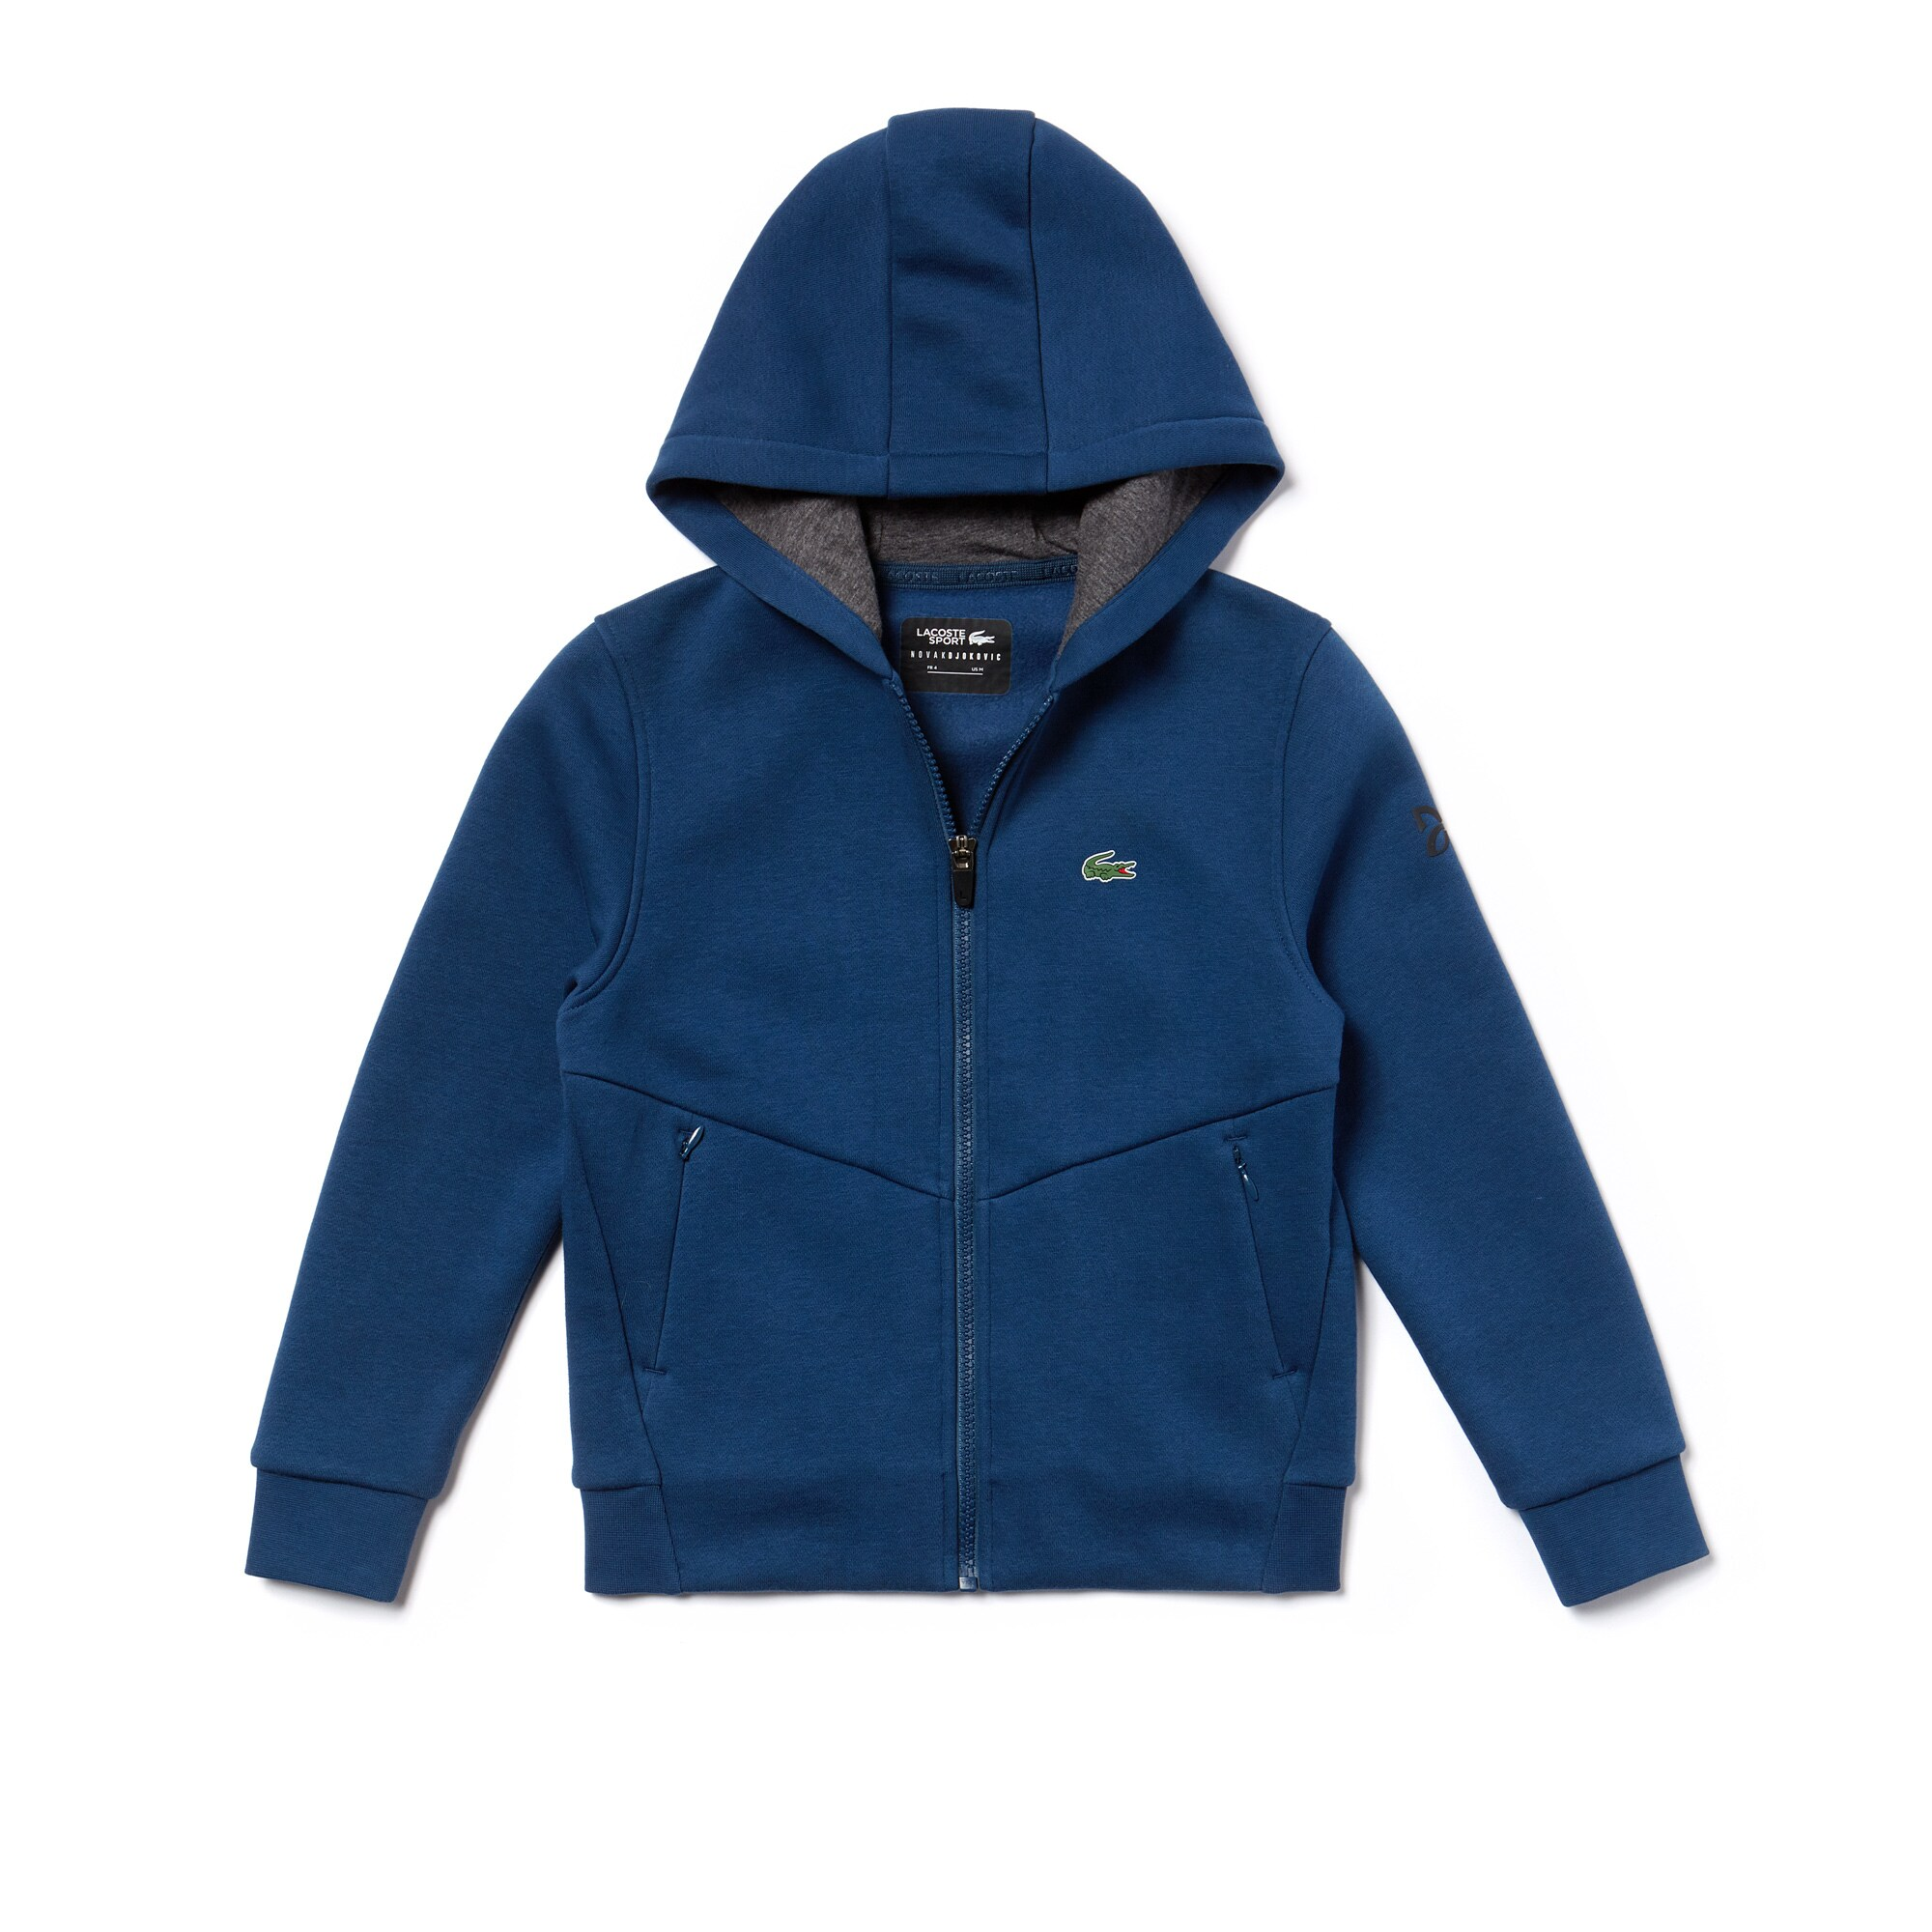 Boys' Lacoste SPORT NOVAK DJOKOVIC-OFF COURT COLLECTION Zip Technical Fleece Sweatshirt